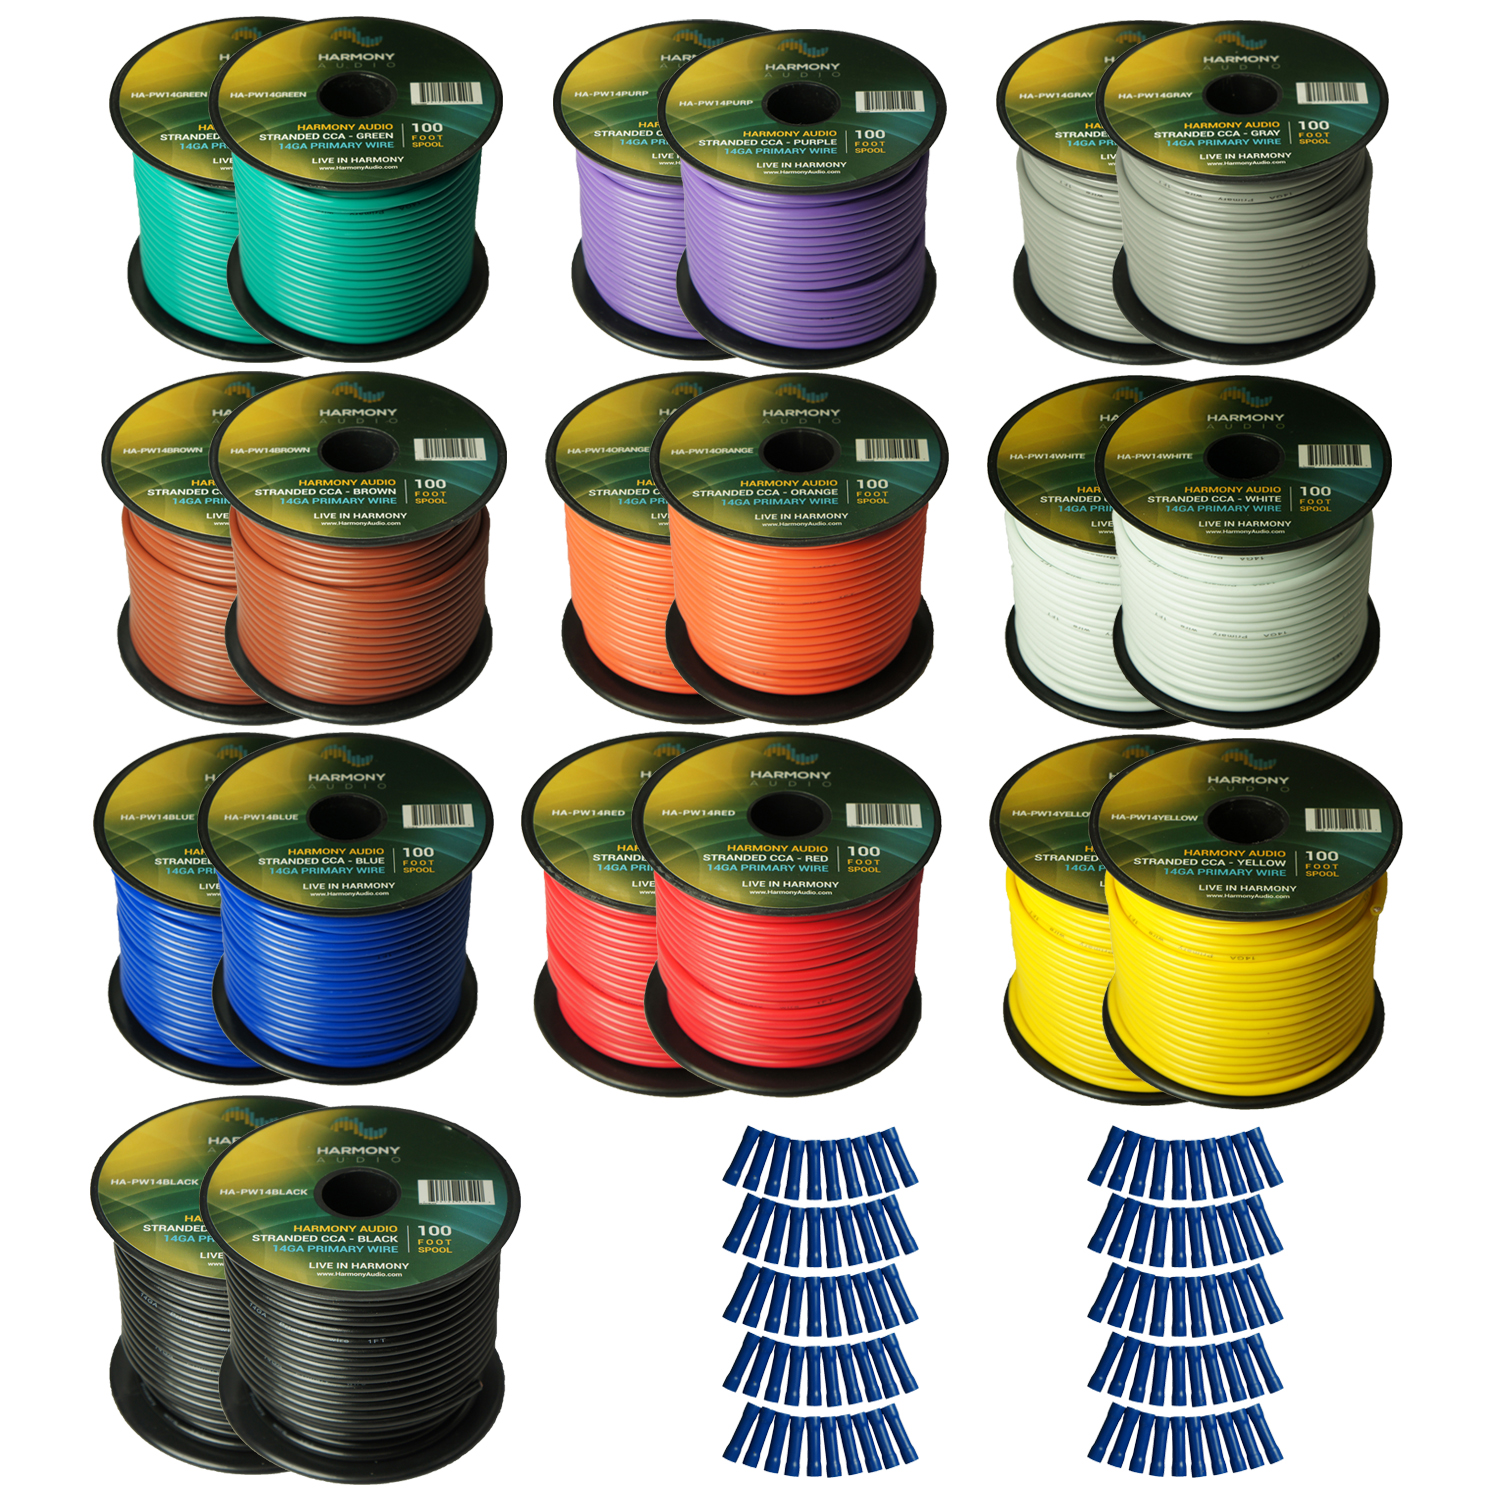 Harmony Audio Primary Single Conductor 14 Gauge Power or Ground Wire - 20 Rolls - 3000 Feet - Color Mix for Car Audio / Trailer / Model Train / Remote